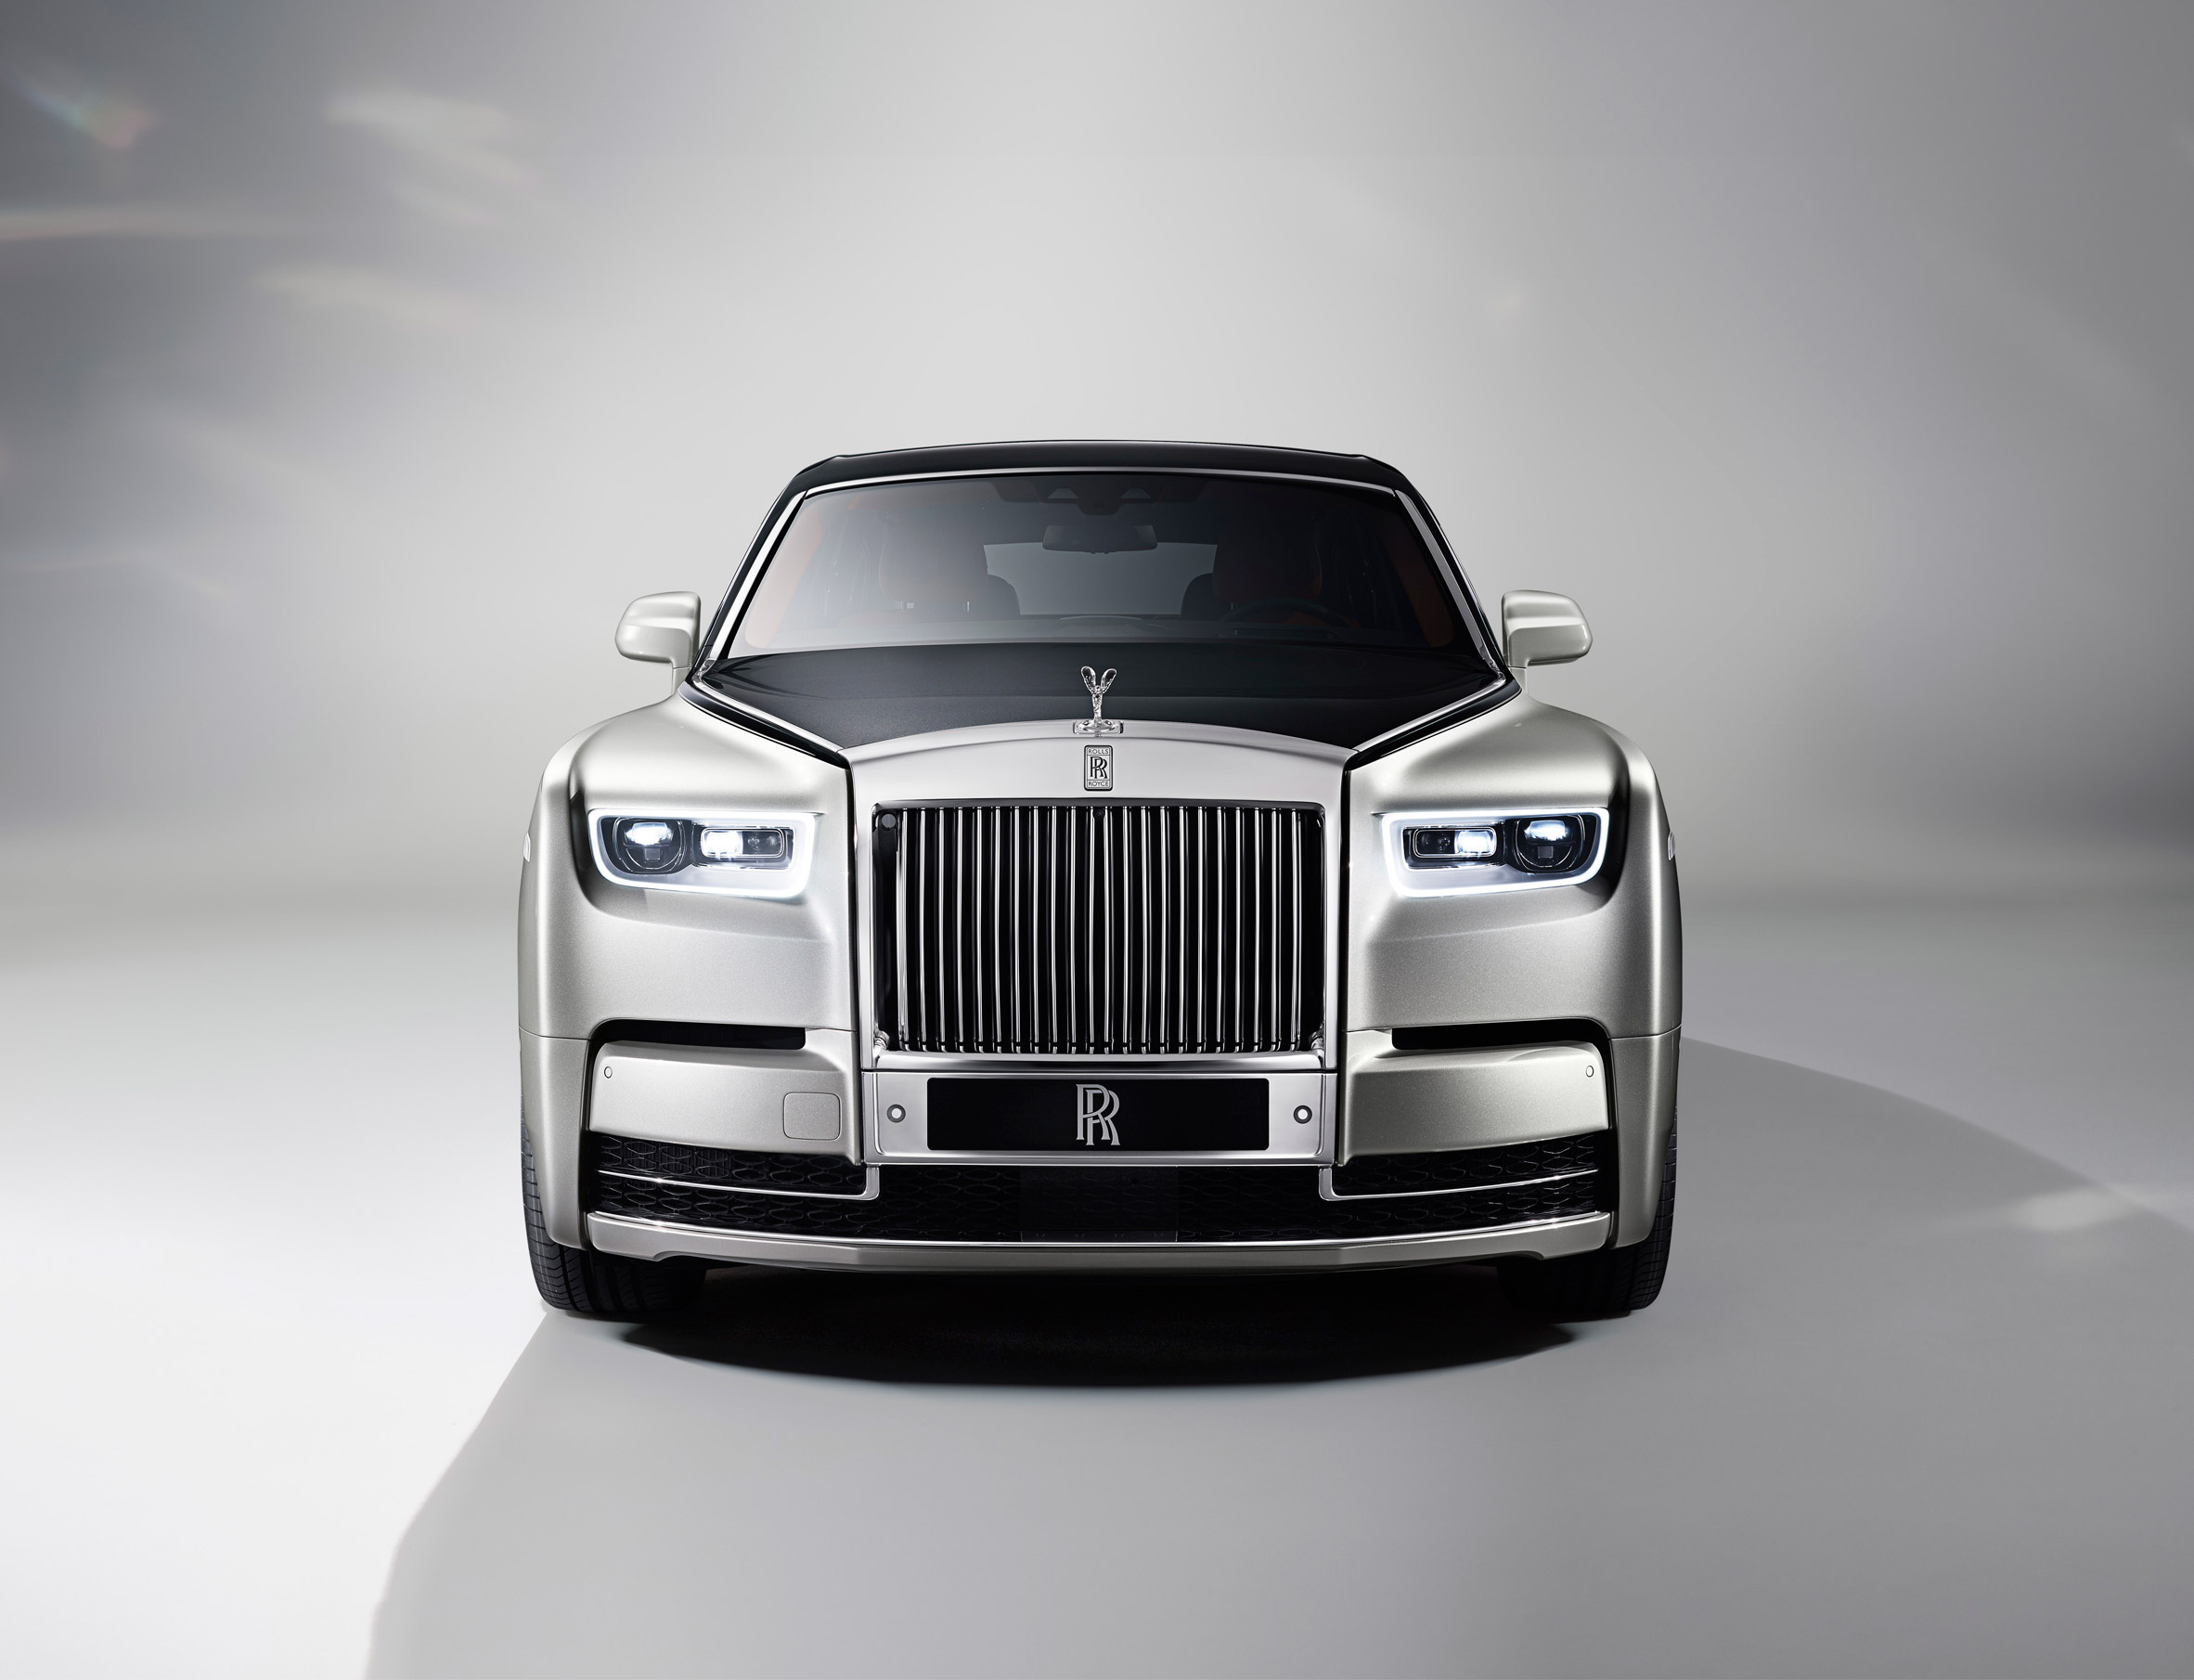 dc design rolls royce in london designer dc Rolls-Royce unveils new Phantom car ...